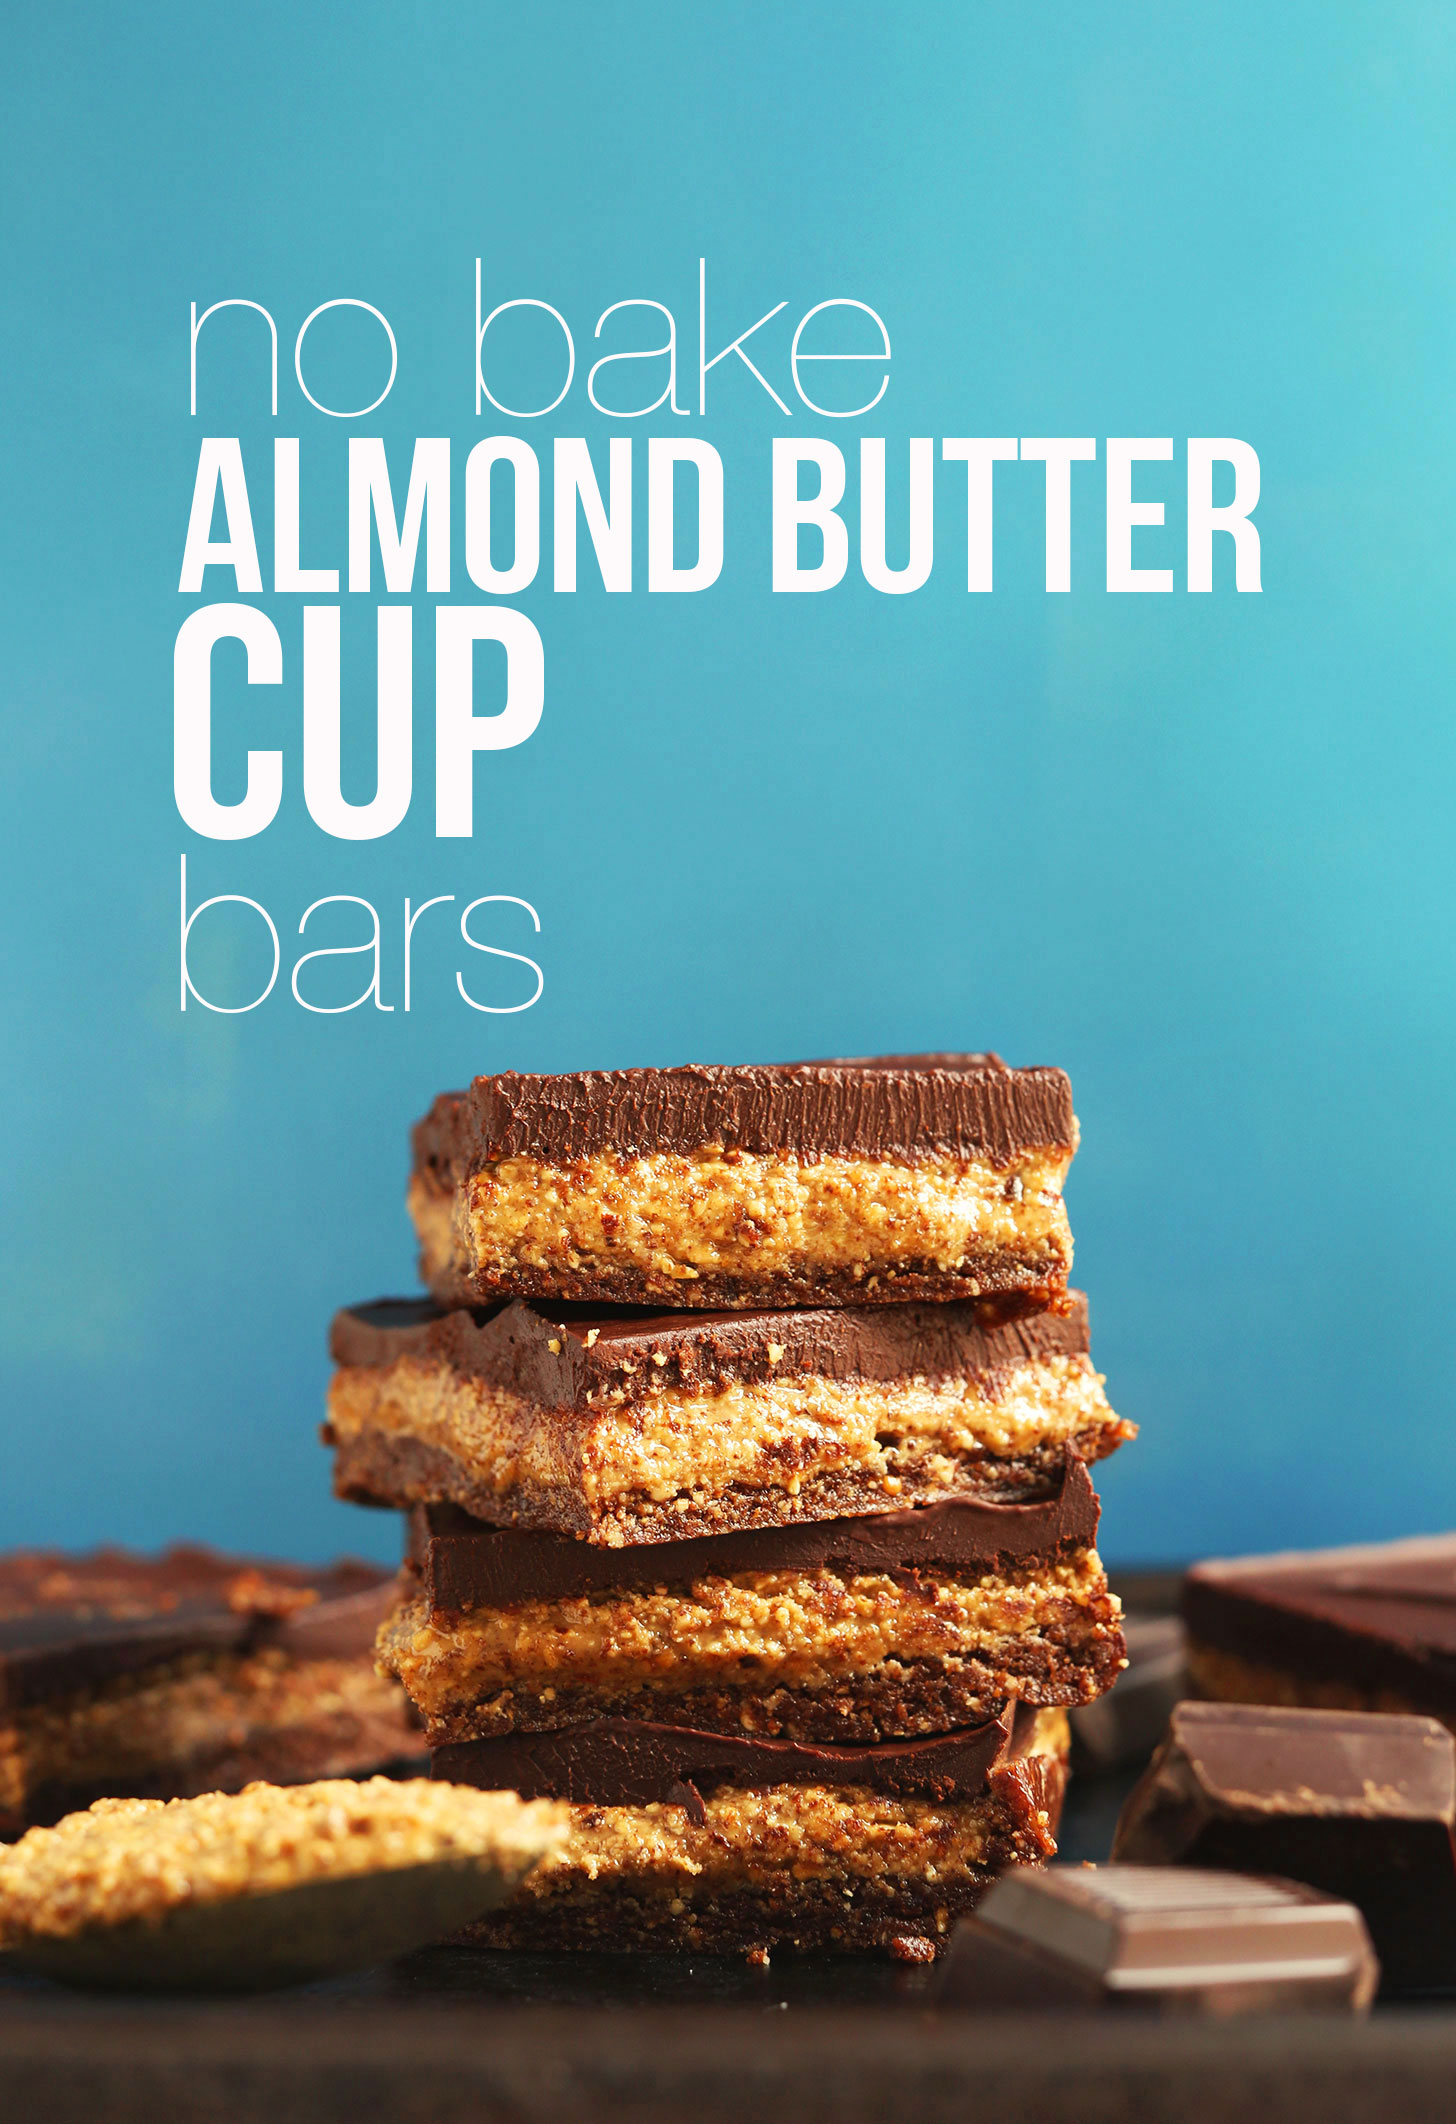 AMAZING Creamy Fudgy No Bake Almond Butter Cup Bars in 20 MINUTES! #vegan #glutenfree #chocolate #almondbutter #recipe #minimalistbaker